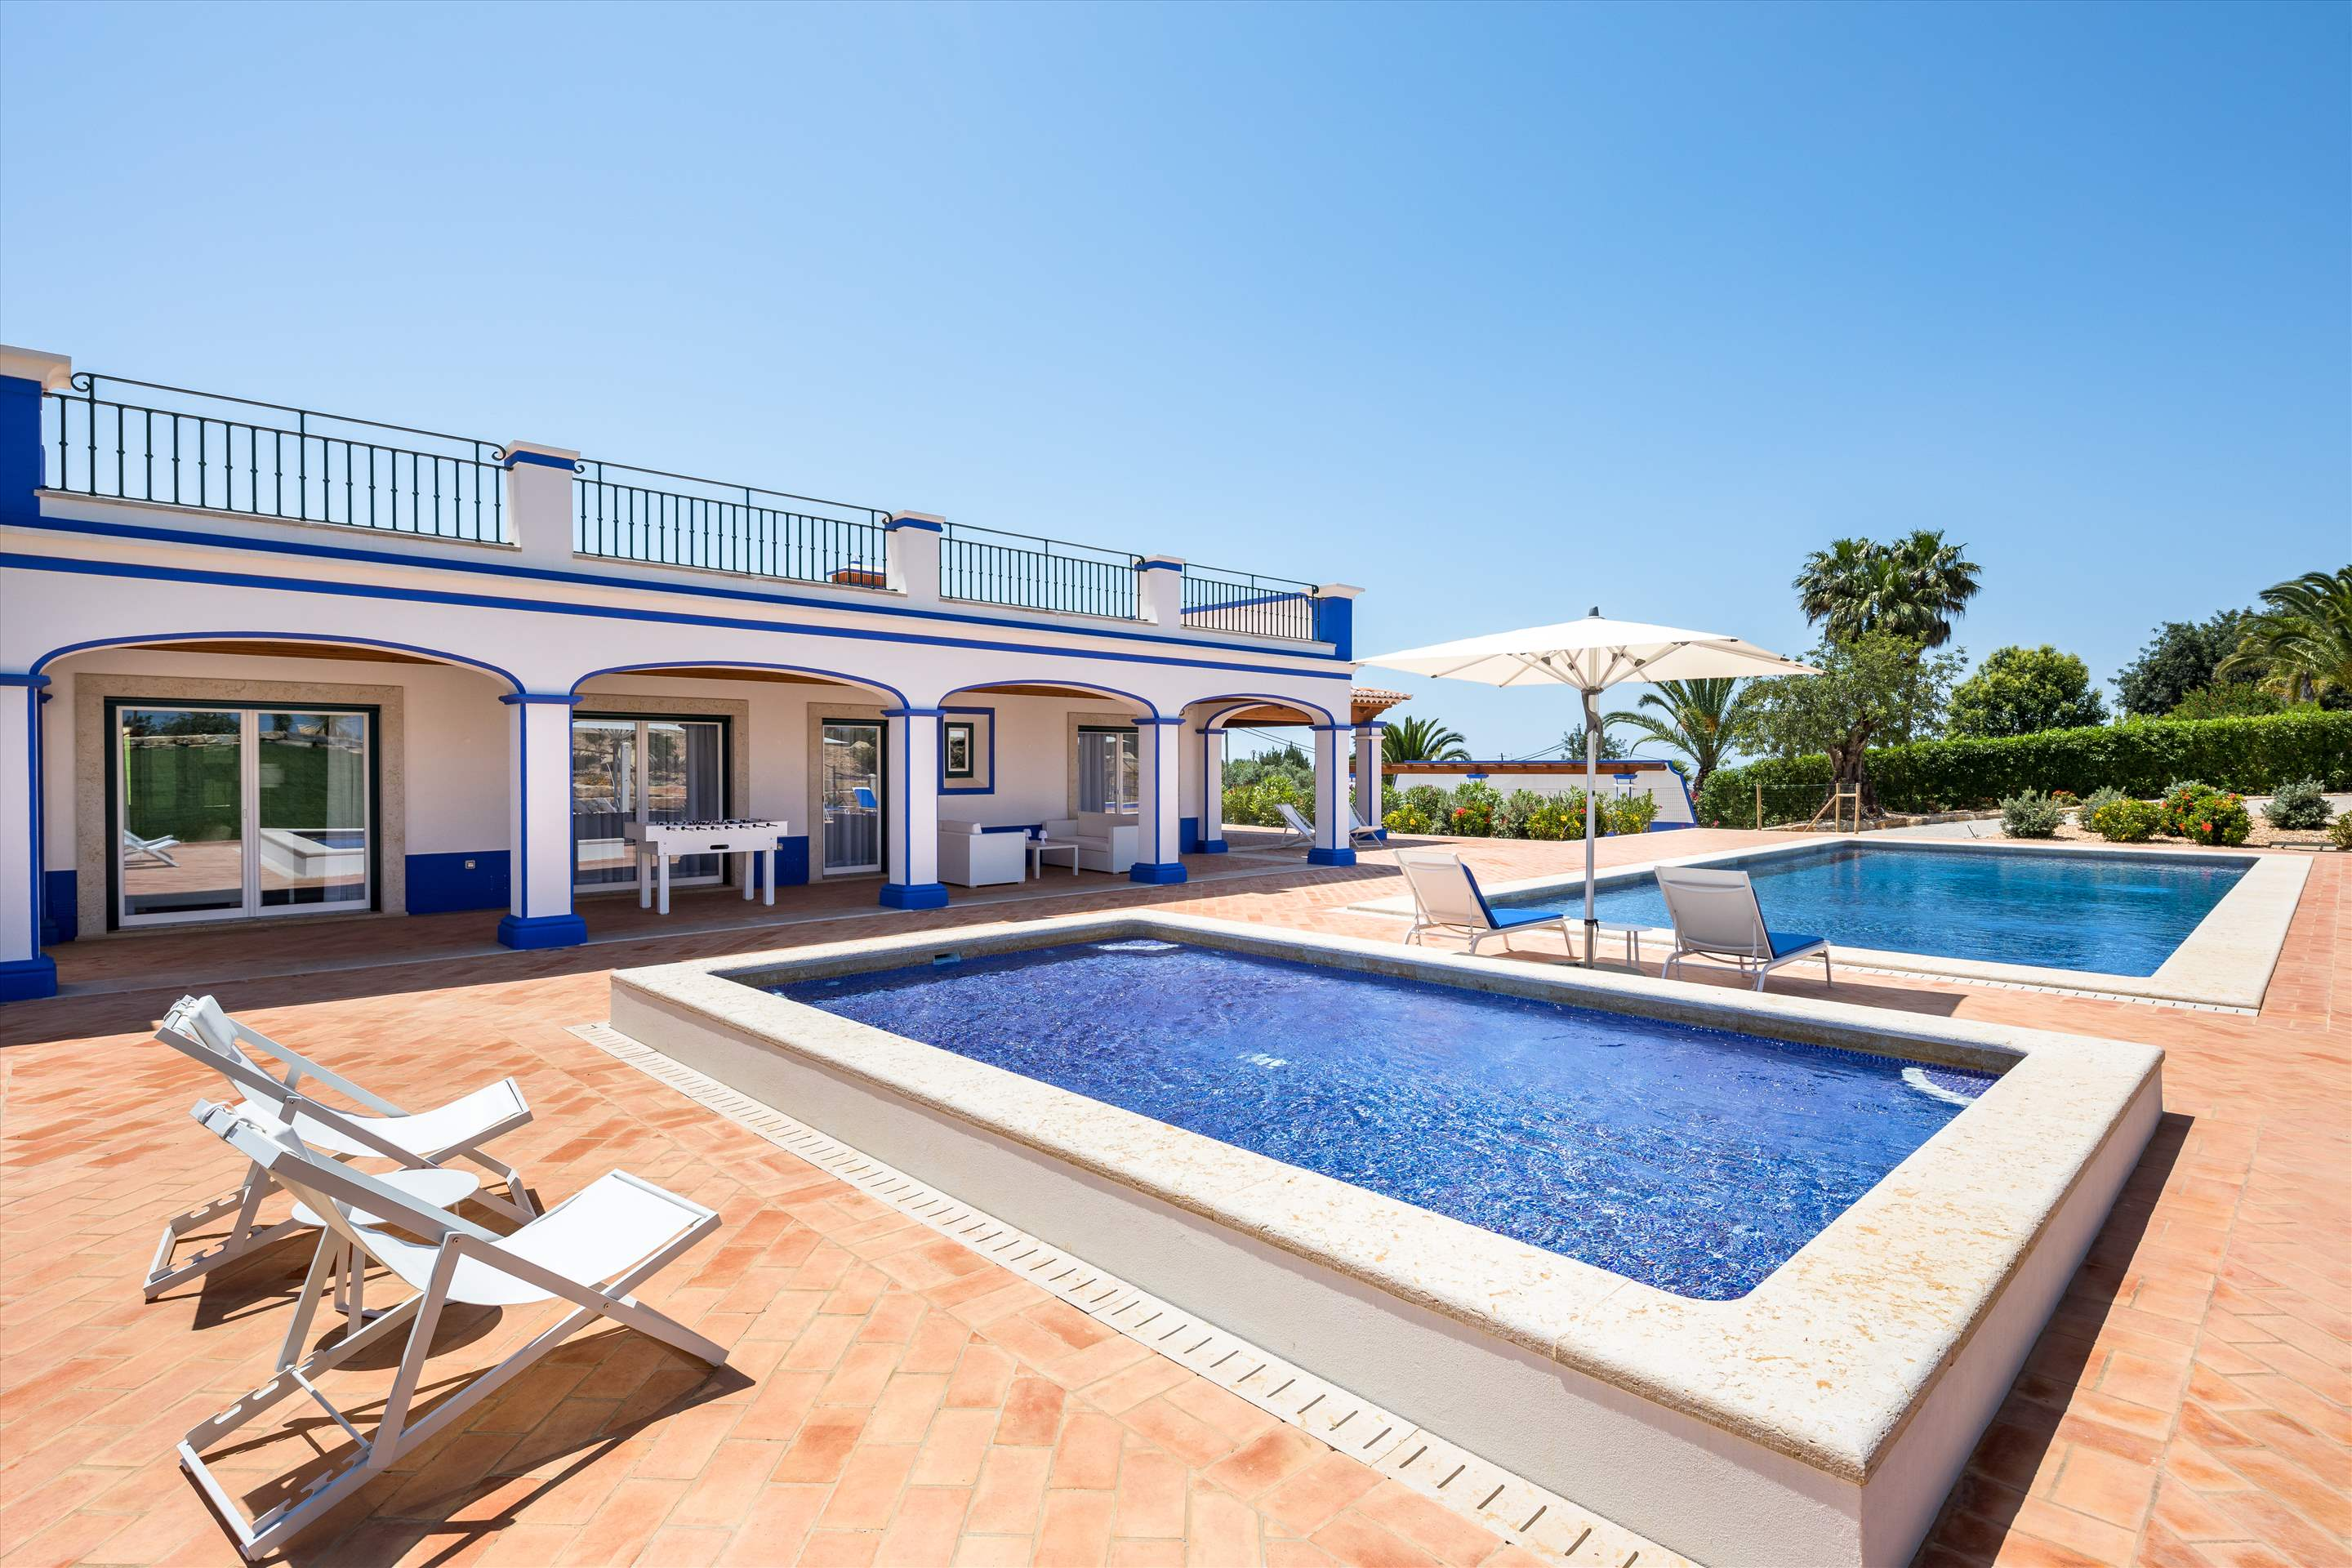 Villa Sky, 4 bedroom villa in Vilamoura Area, Algarve Photo #13